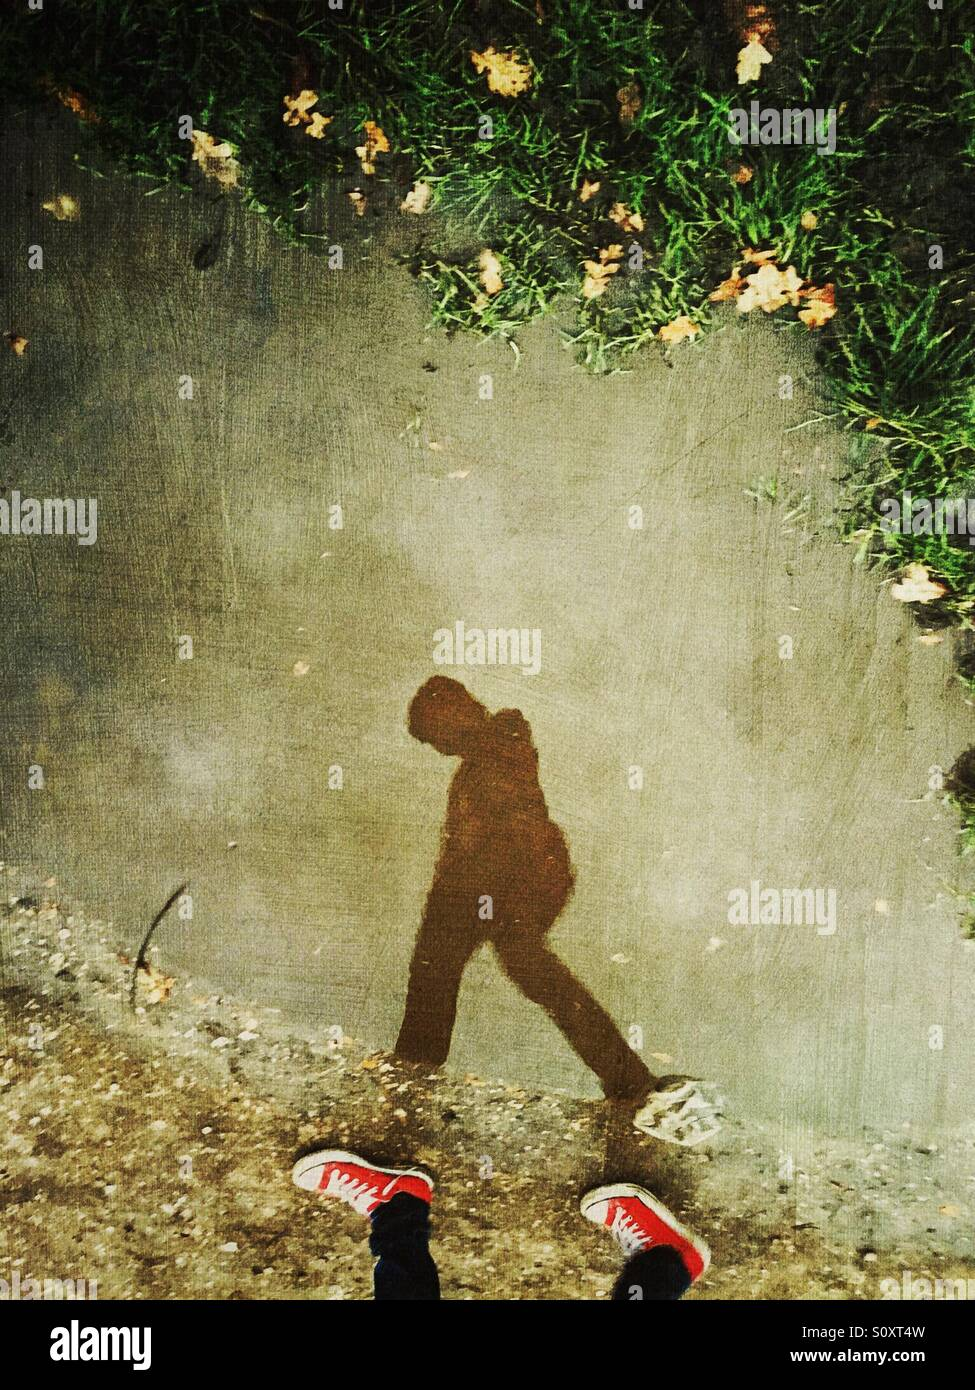 Boy silhouette walking with red converse - Stock Image